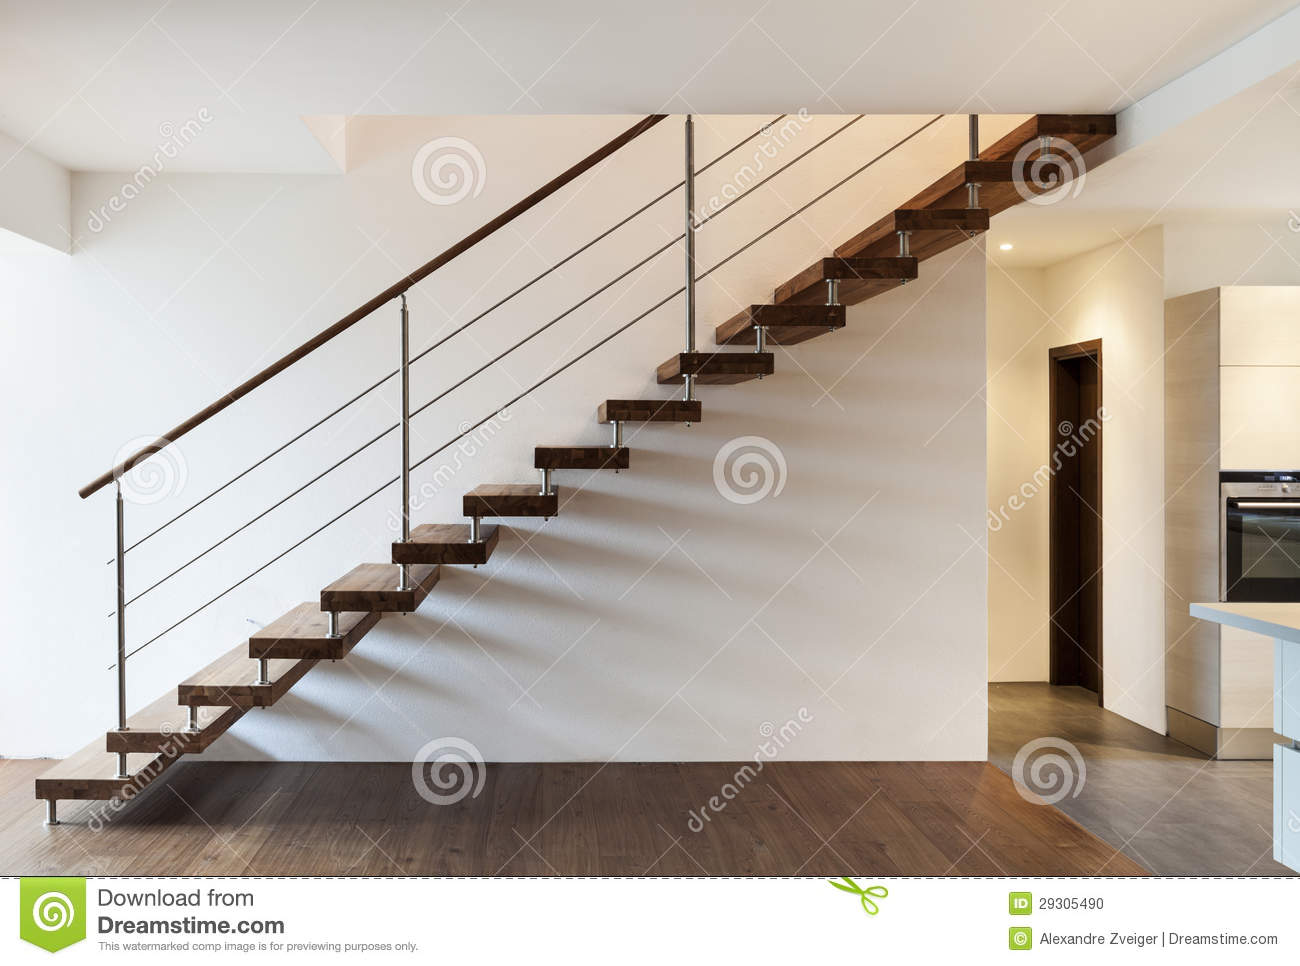 Escalier int rieur photo stock image du vide acier for Escalier interieur